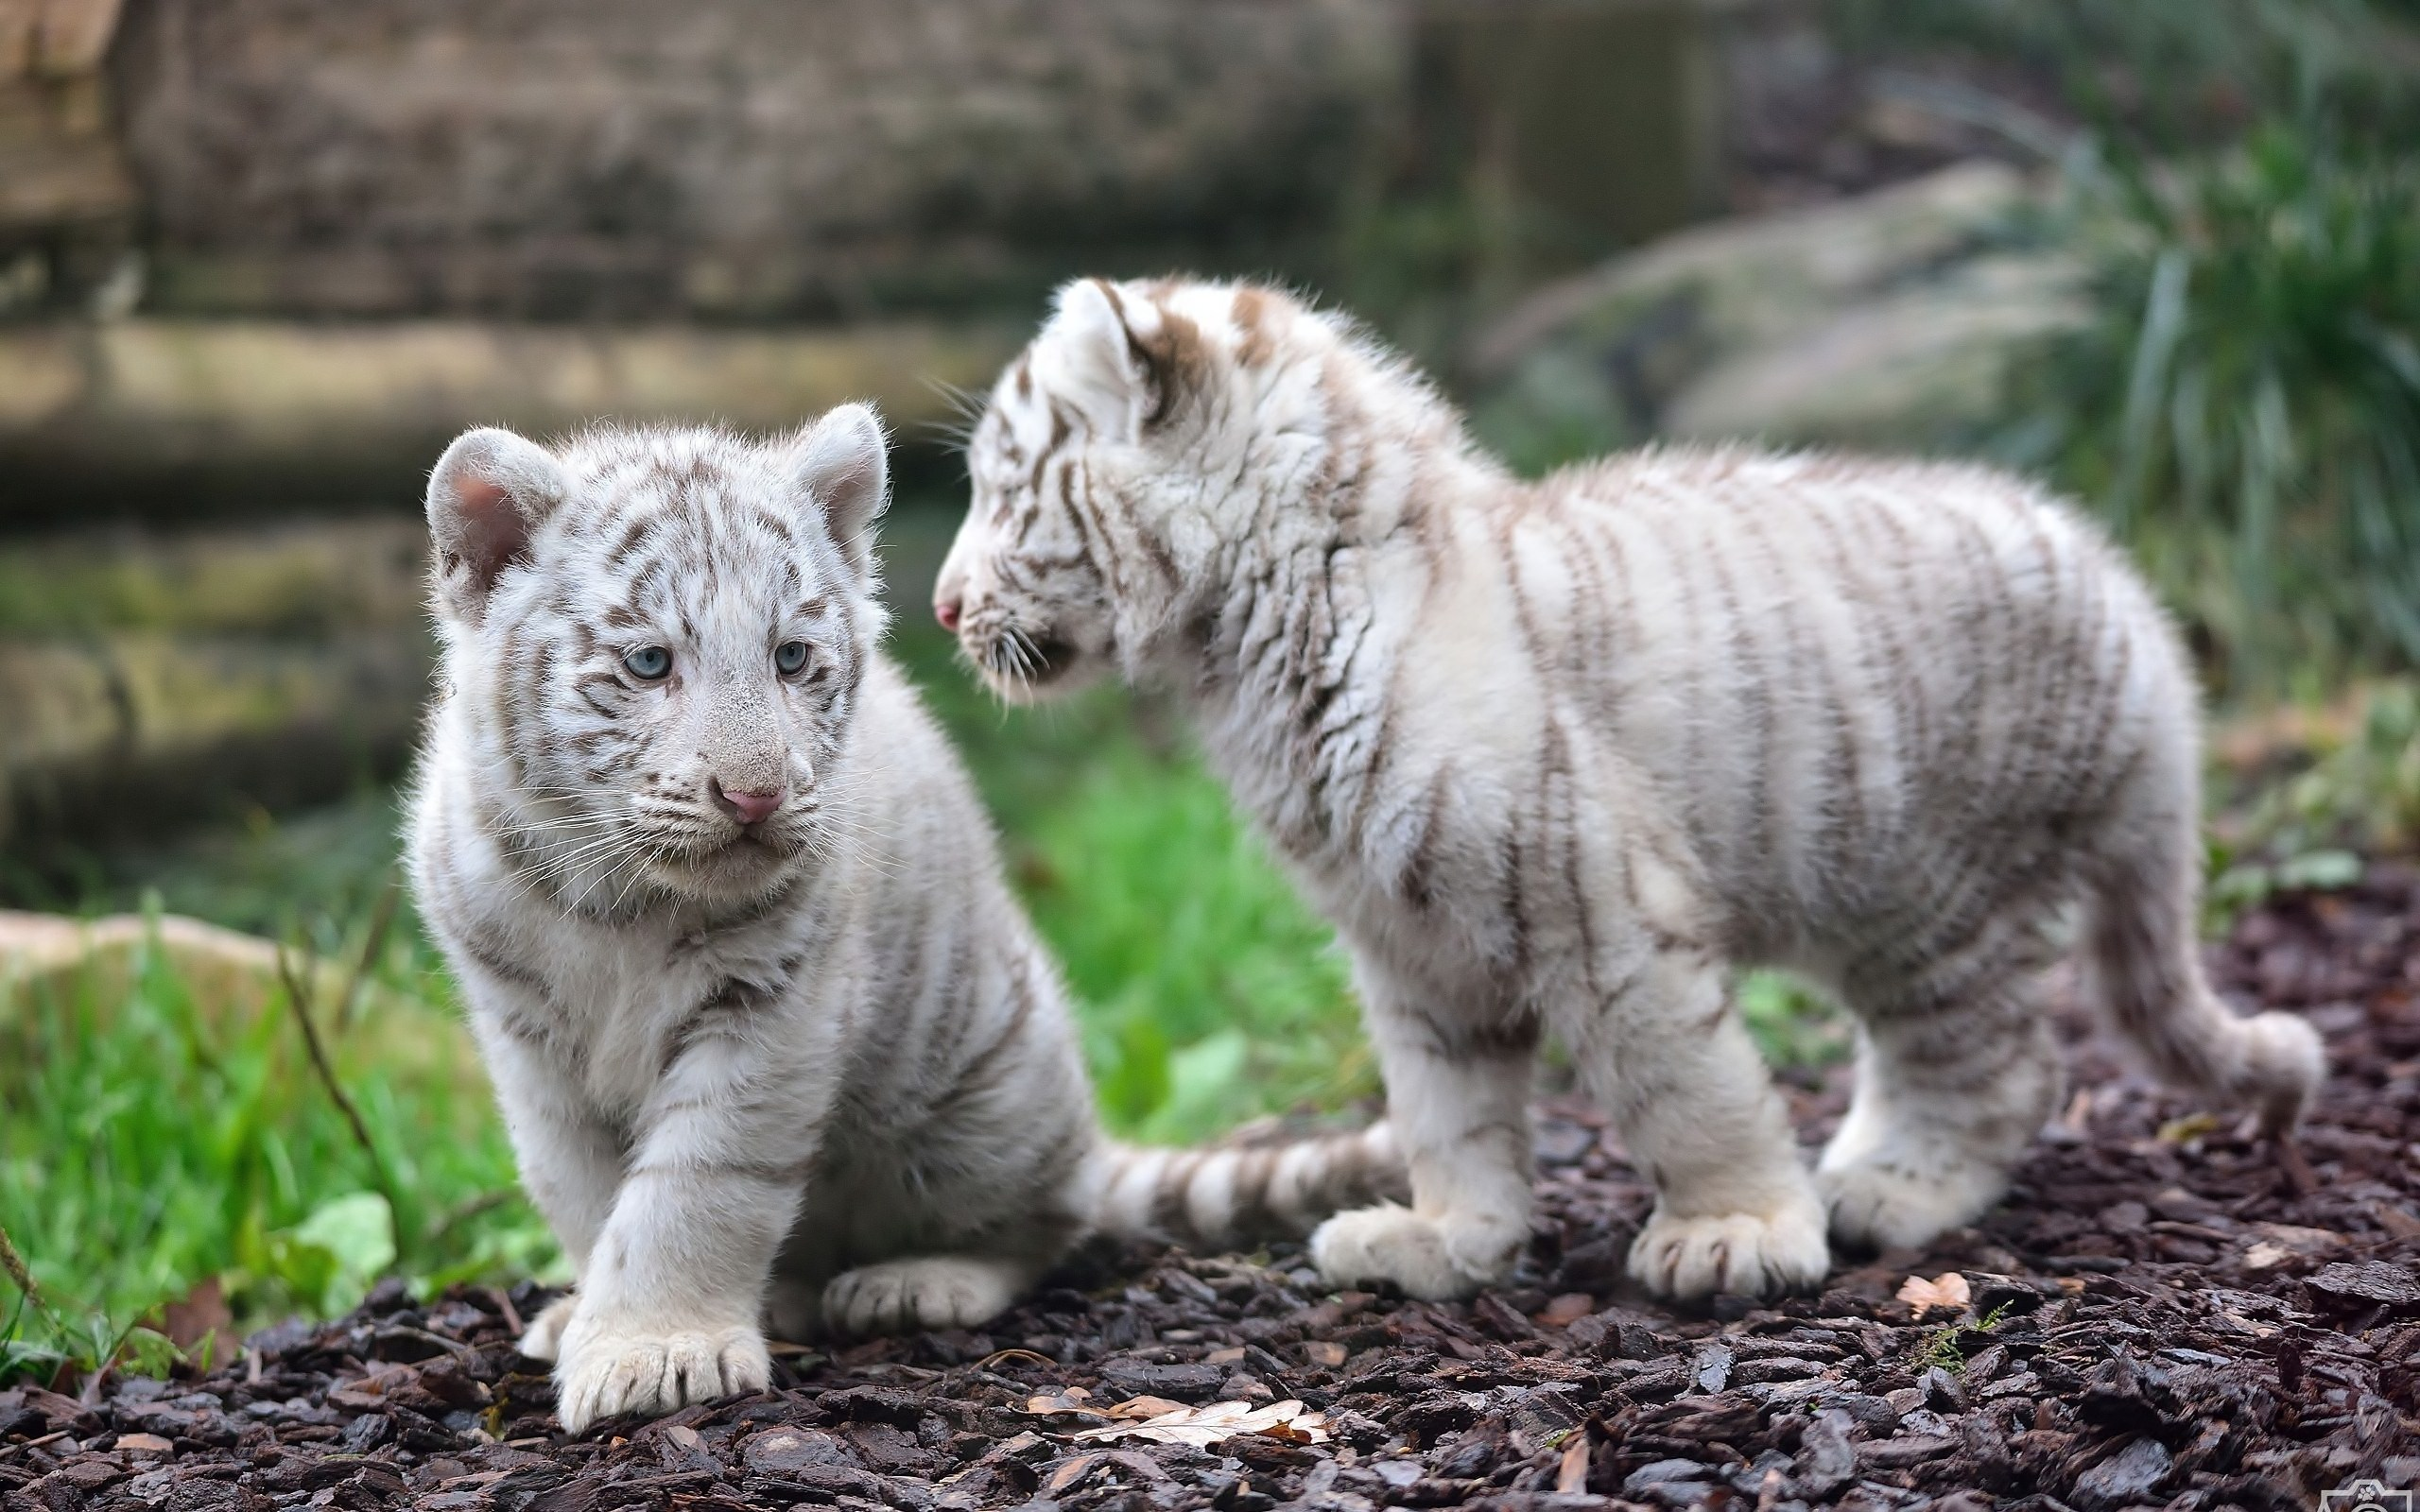 white tiger animal wallpaper 4k animal, 4k images, 4k white tiger